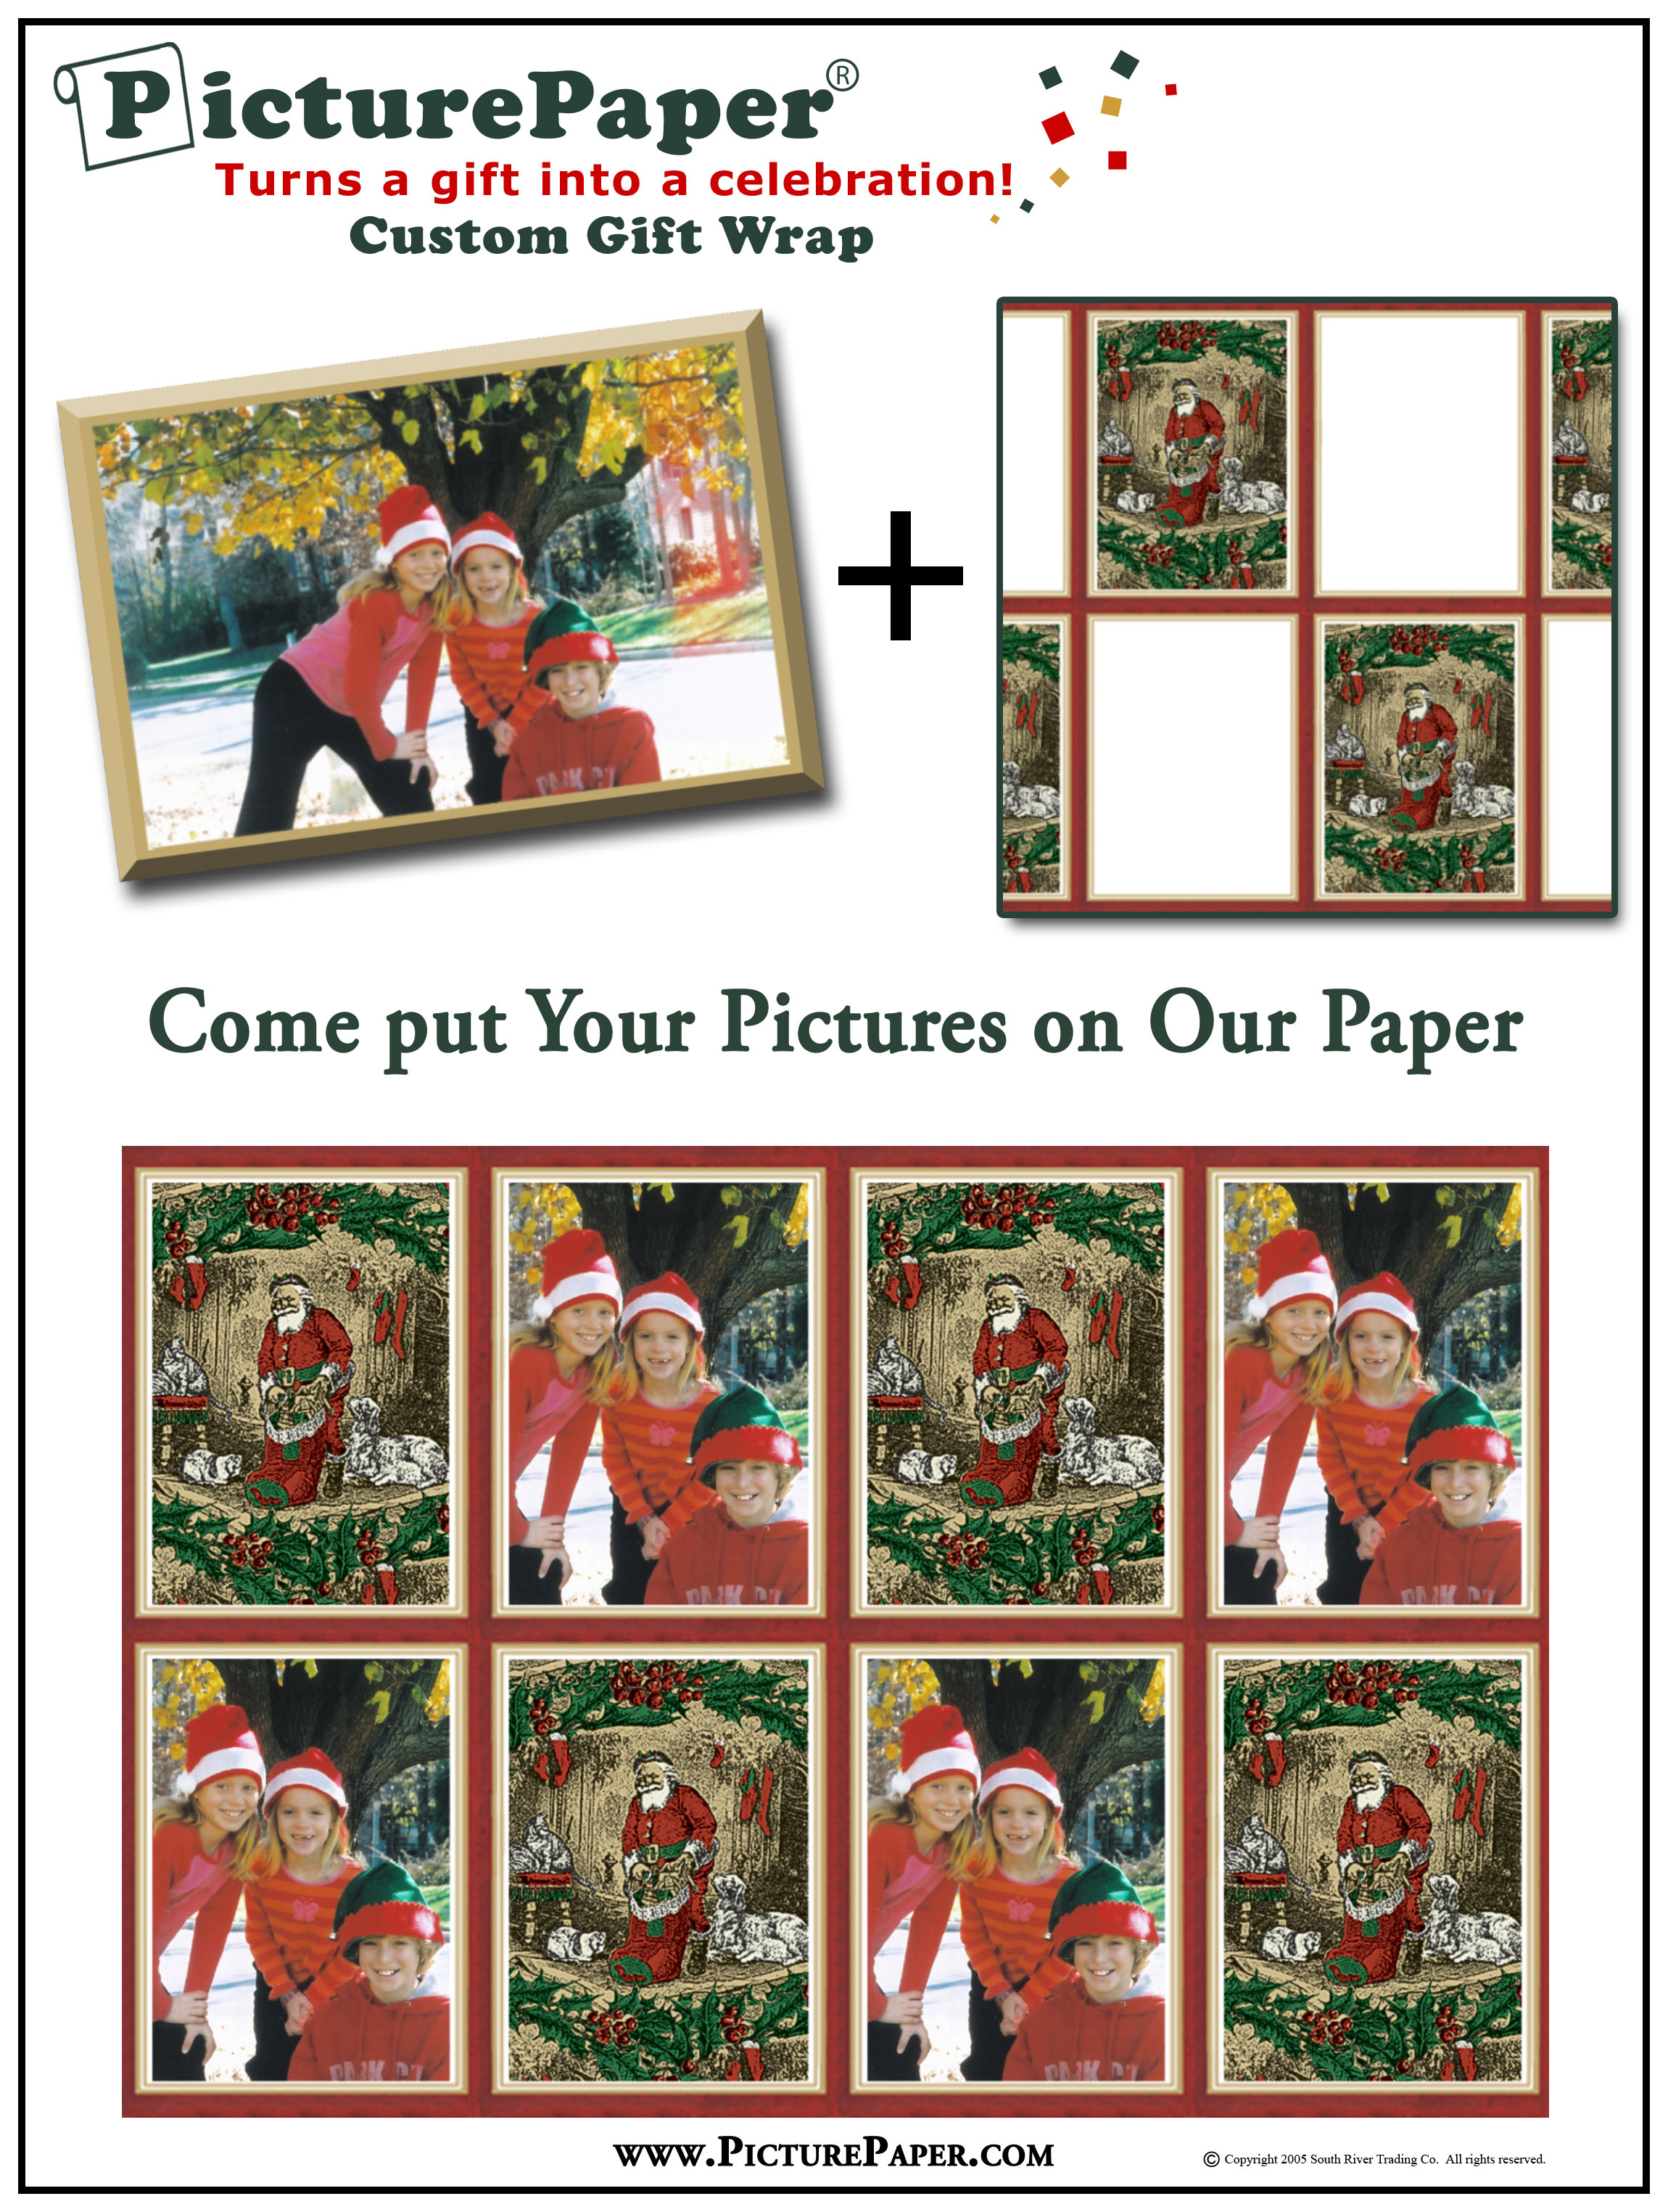 Picturepaper Customized Wrapping Paper Answers Hollywood